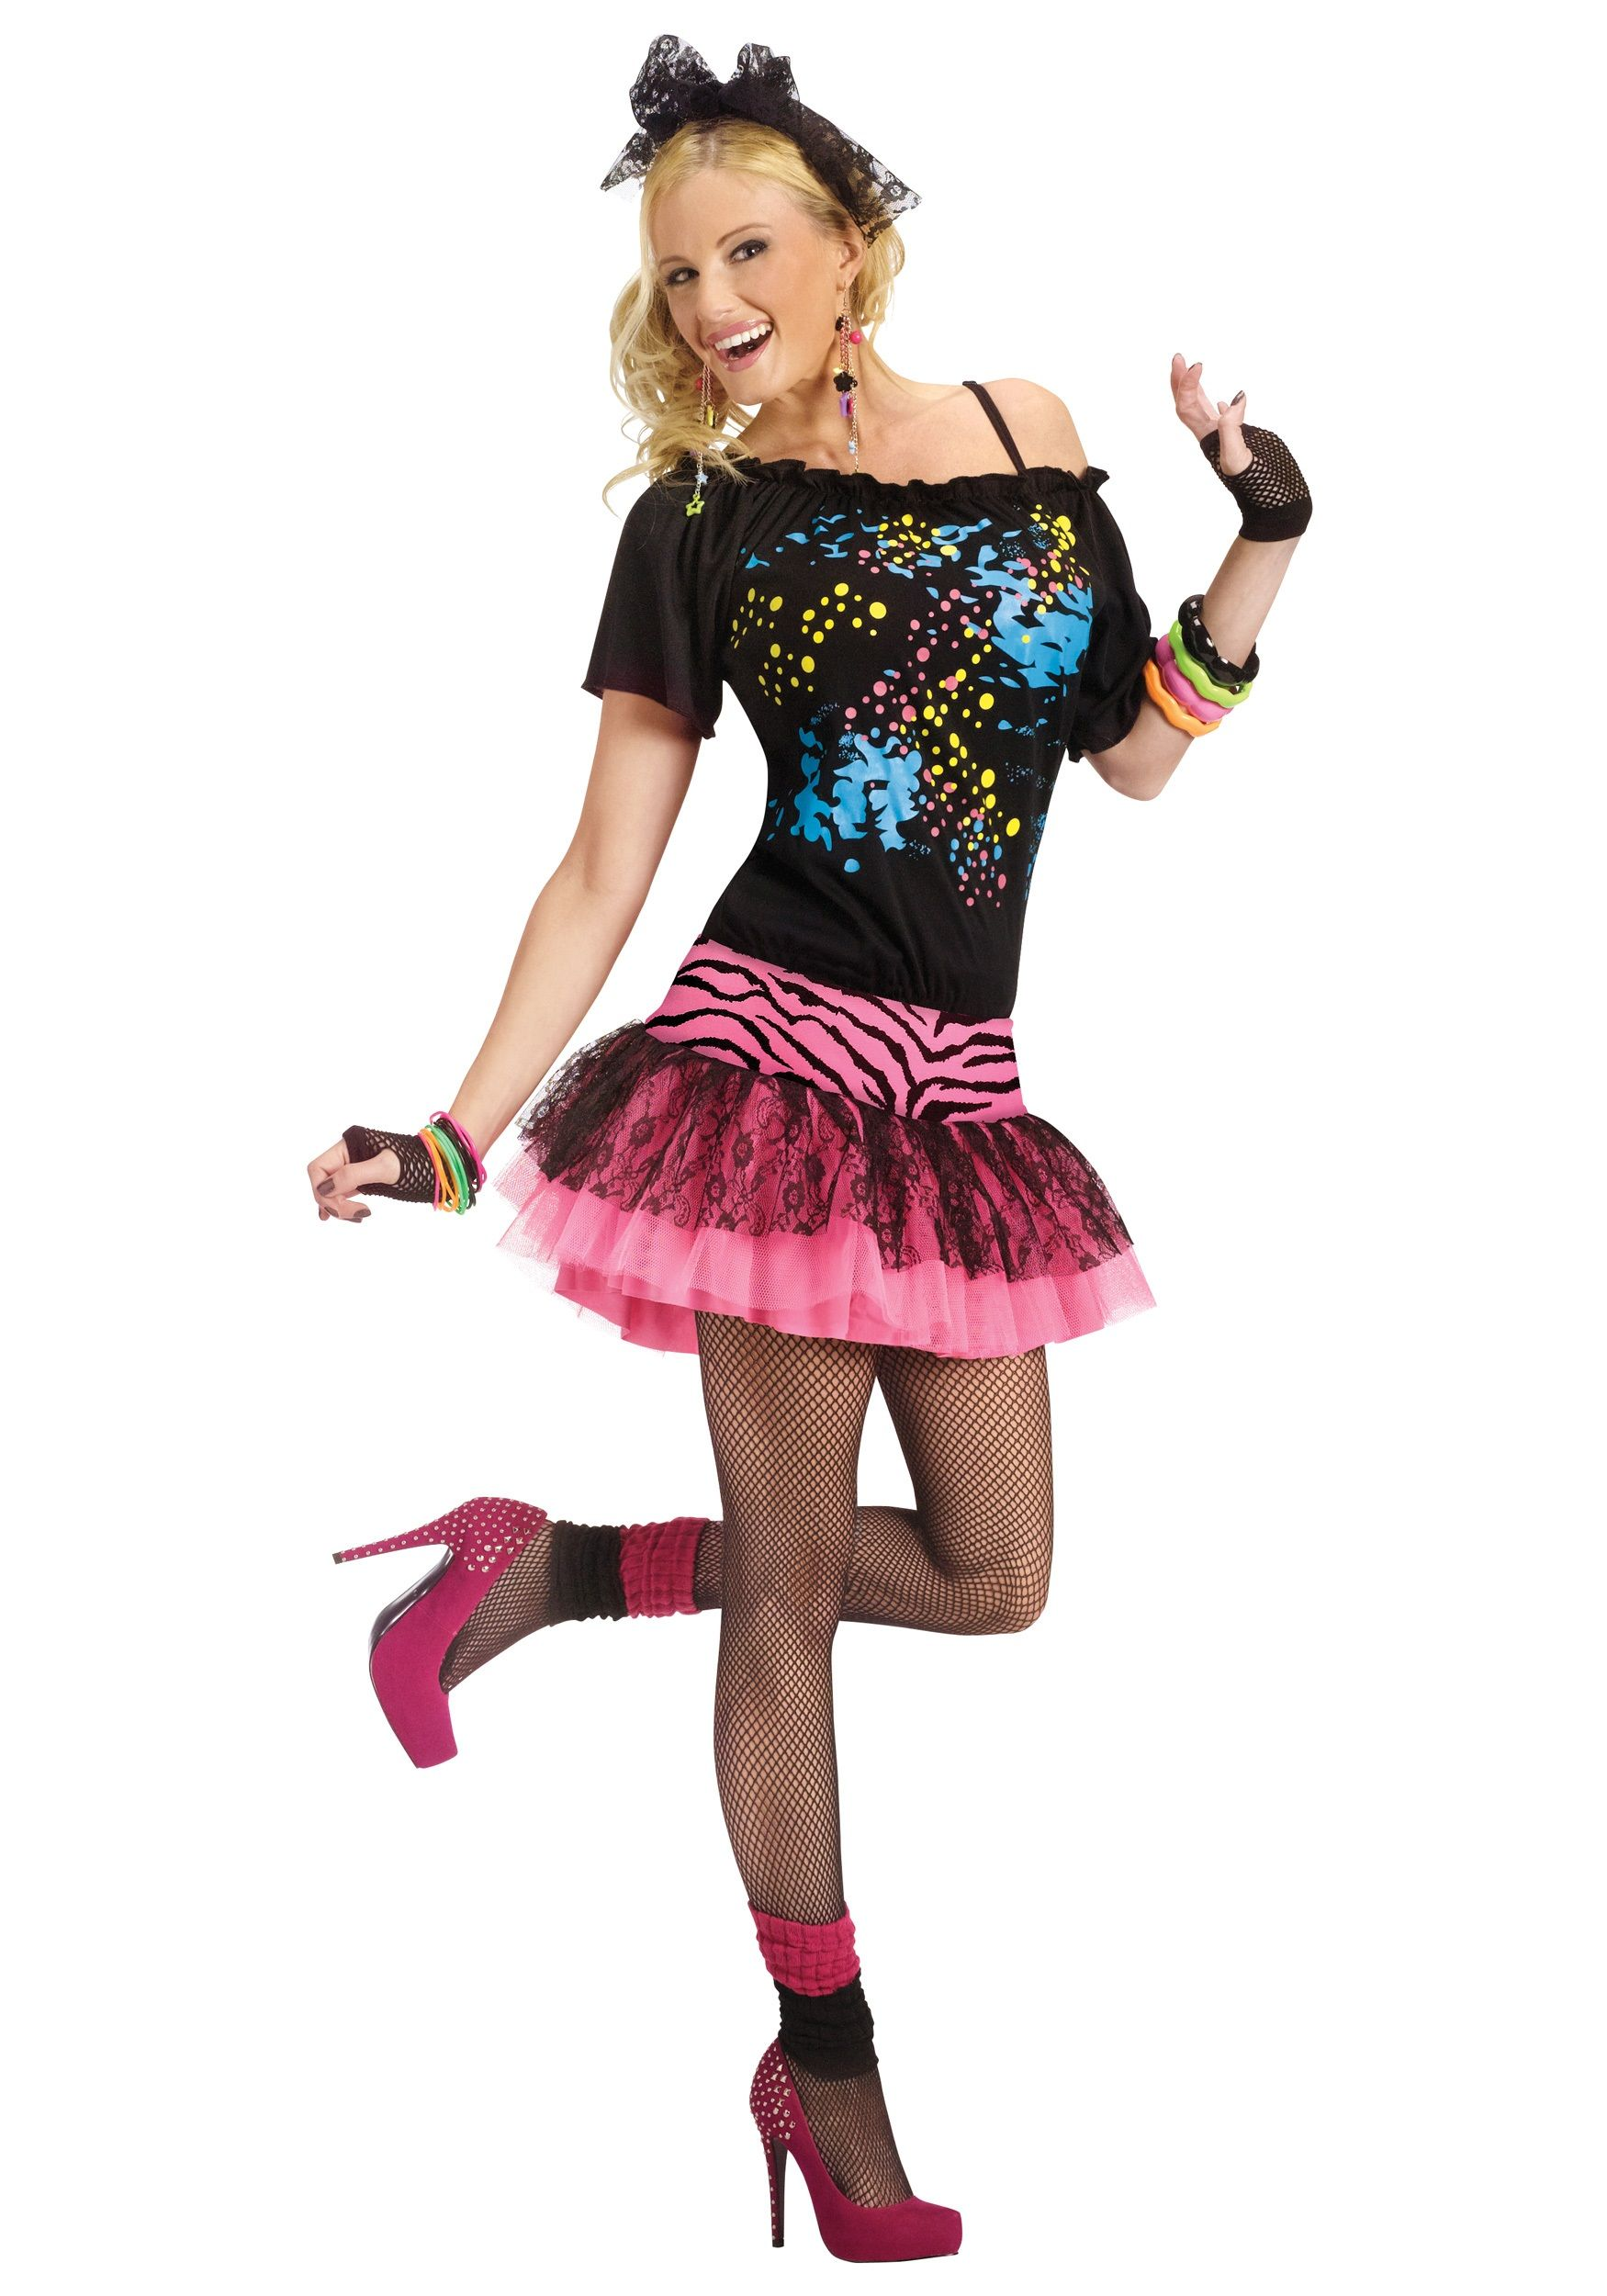 S dress home halloween costume ideas s costume ideas adult s